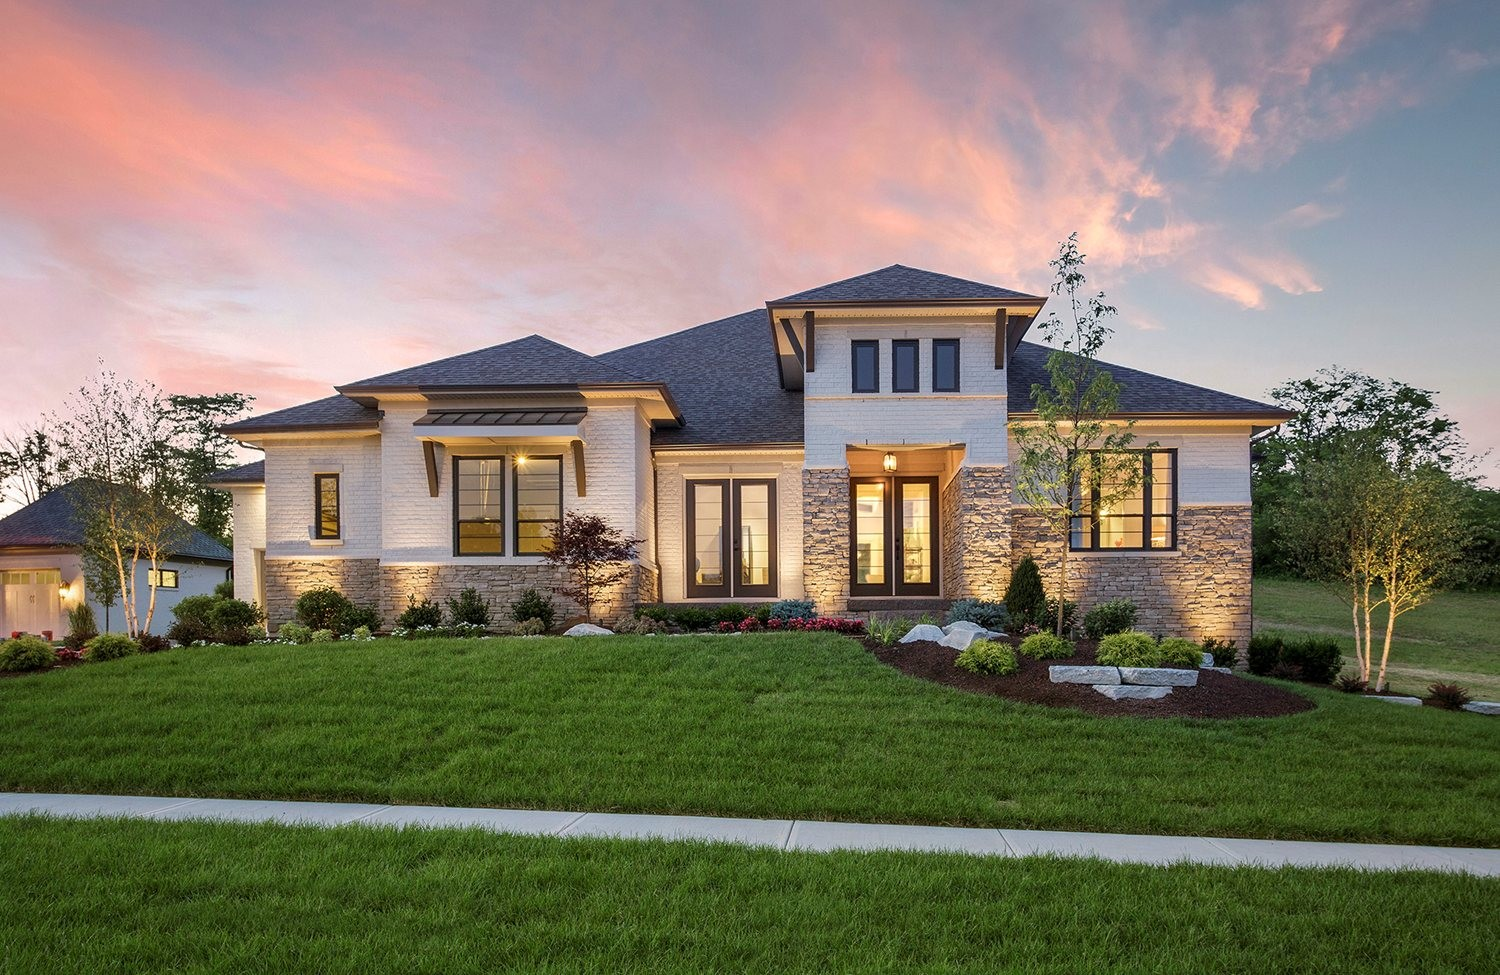 Houses For Sale In Fishers In